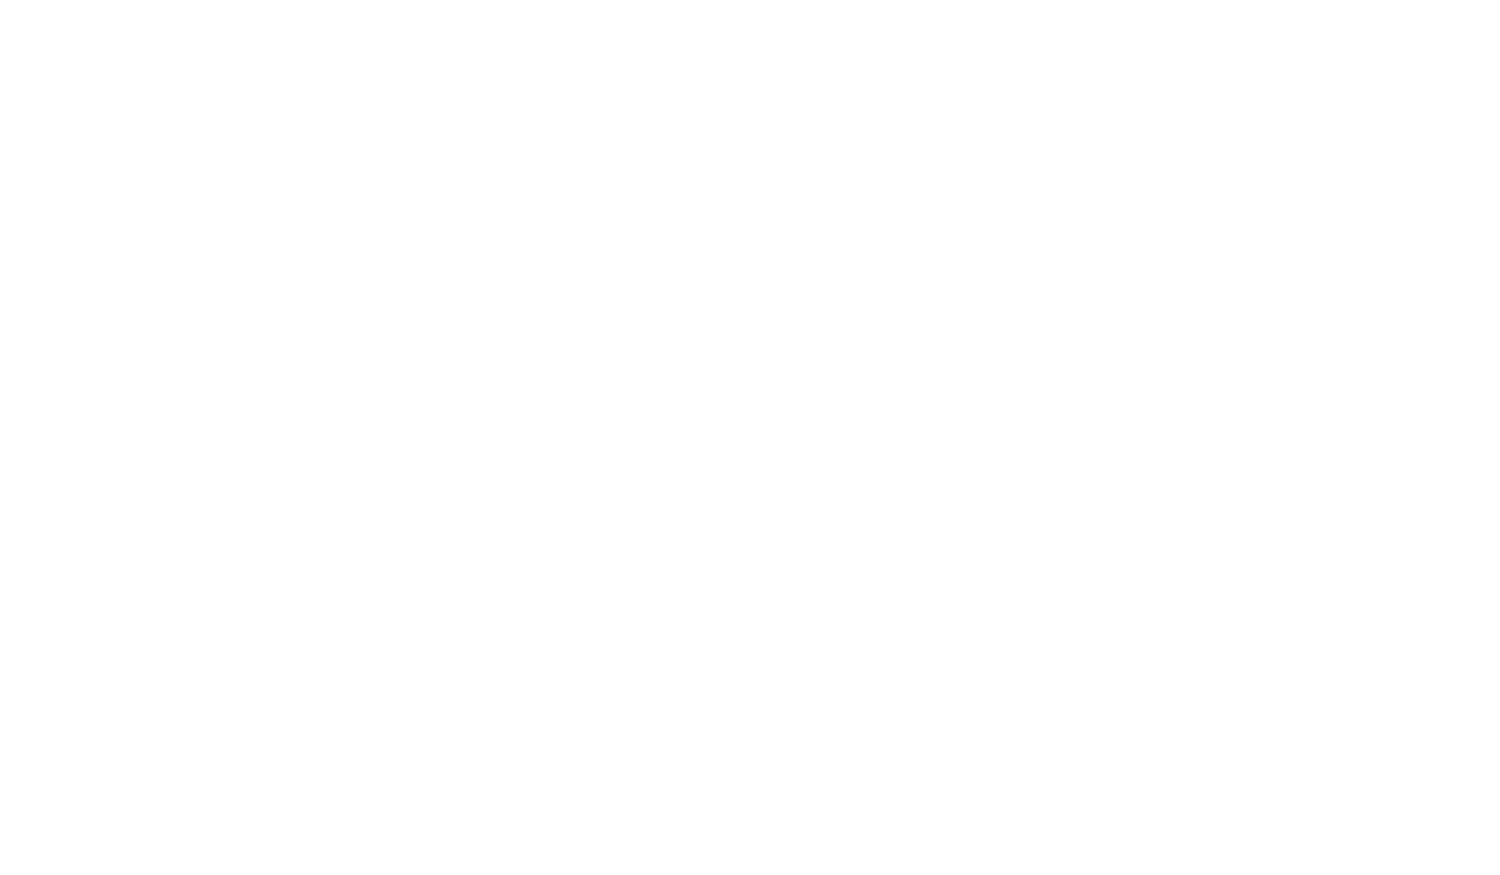 Lydian Collective